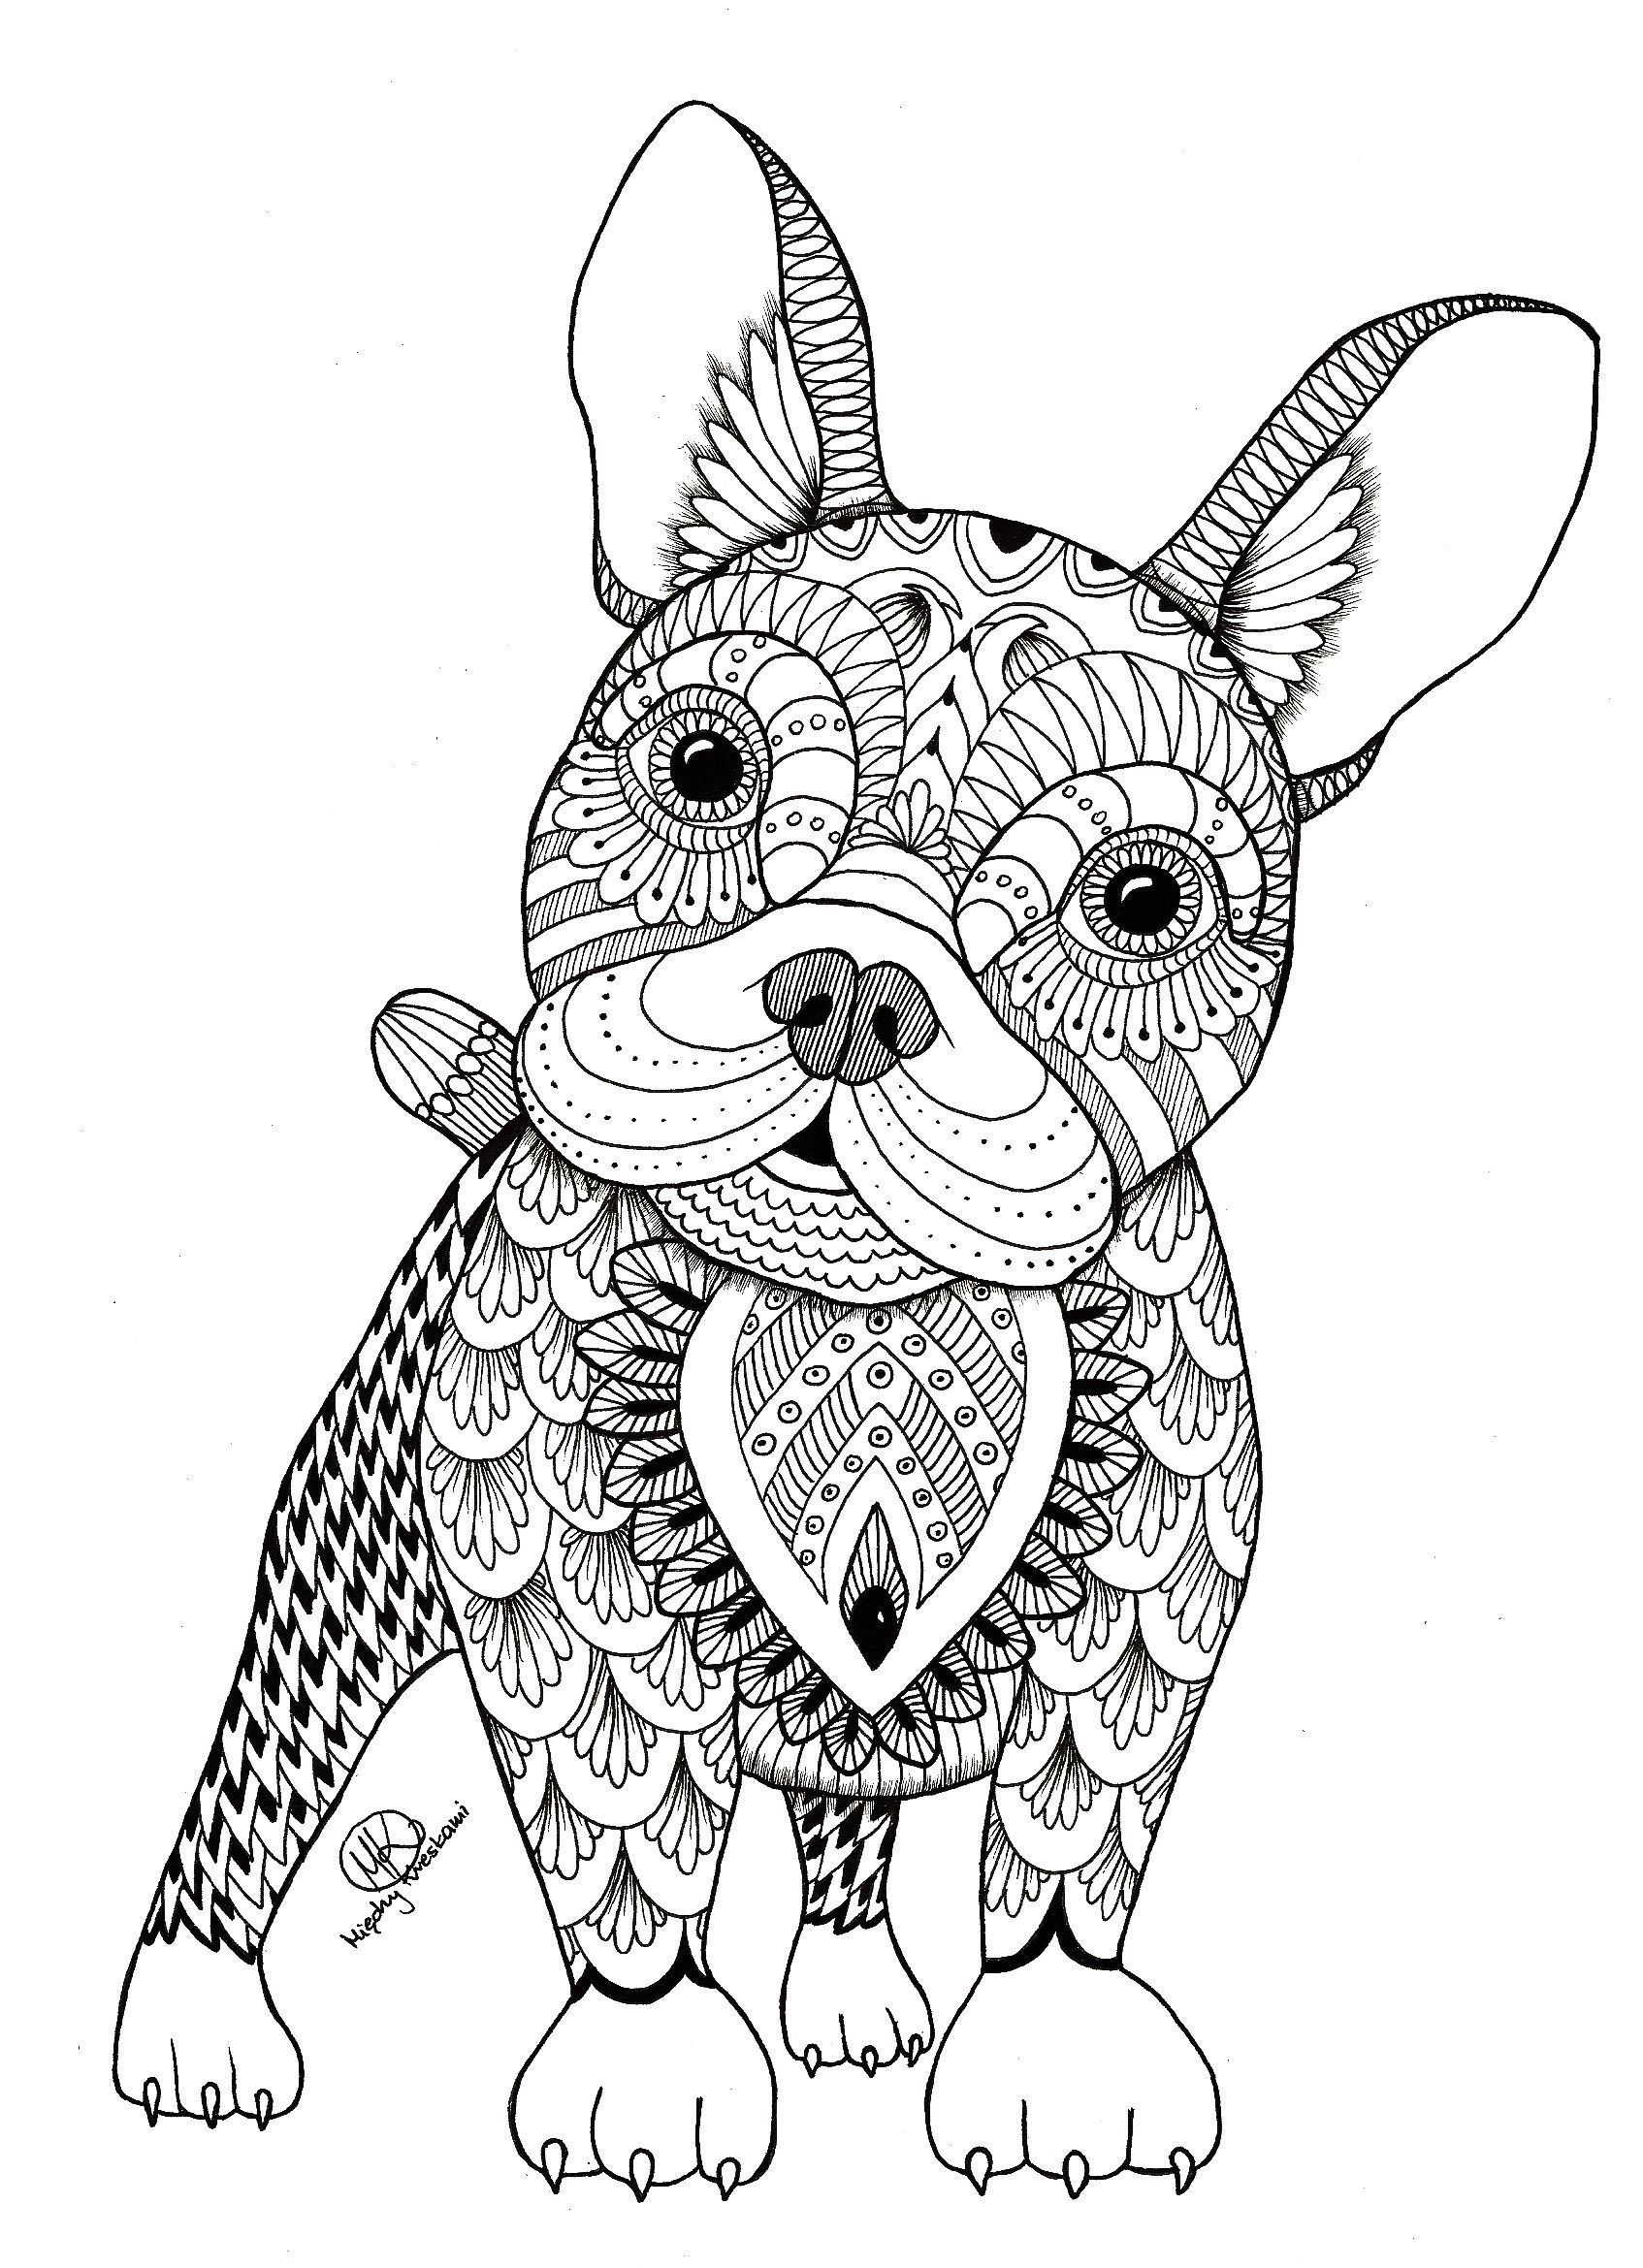 25 Inspiration Image Of Animal Mandala Coloring Pages Entitlementtrap Com In 2020 Animal Coloring Pages Mandala Coloring Pages Dog Coloring Page